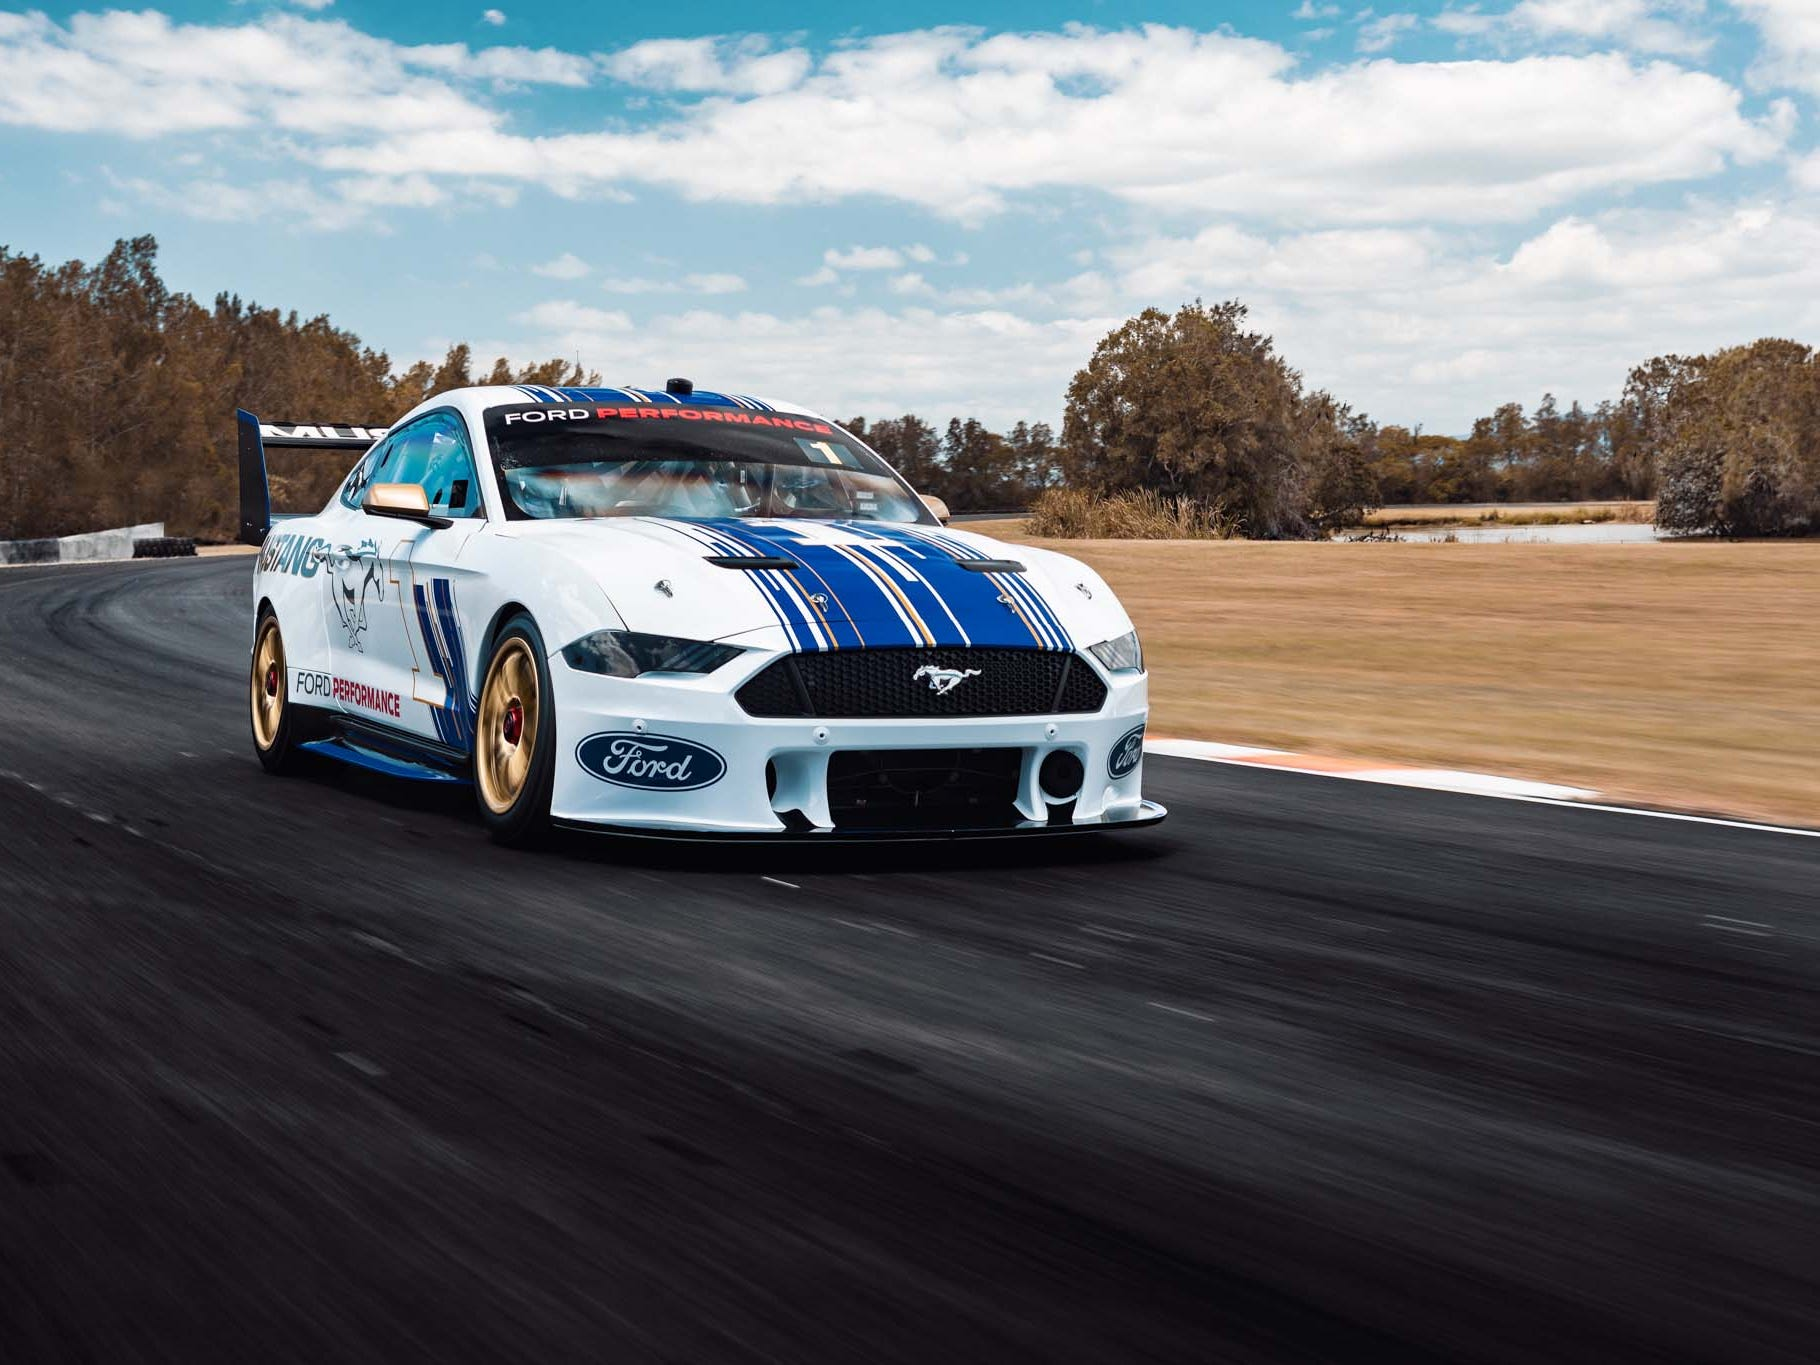 In March Penske Racing will debut the new Ford Mustang Supercar for the Virgin Australian Supercar Series Down Under. The Mustang replaces the Ford Falcon that captured the title in 2018.